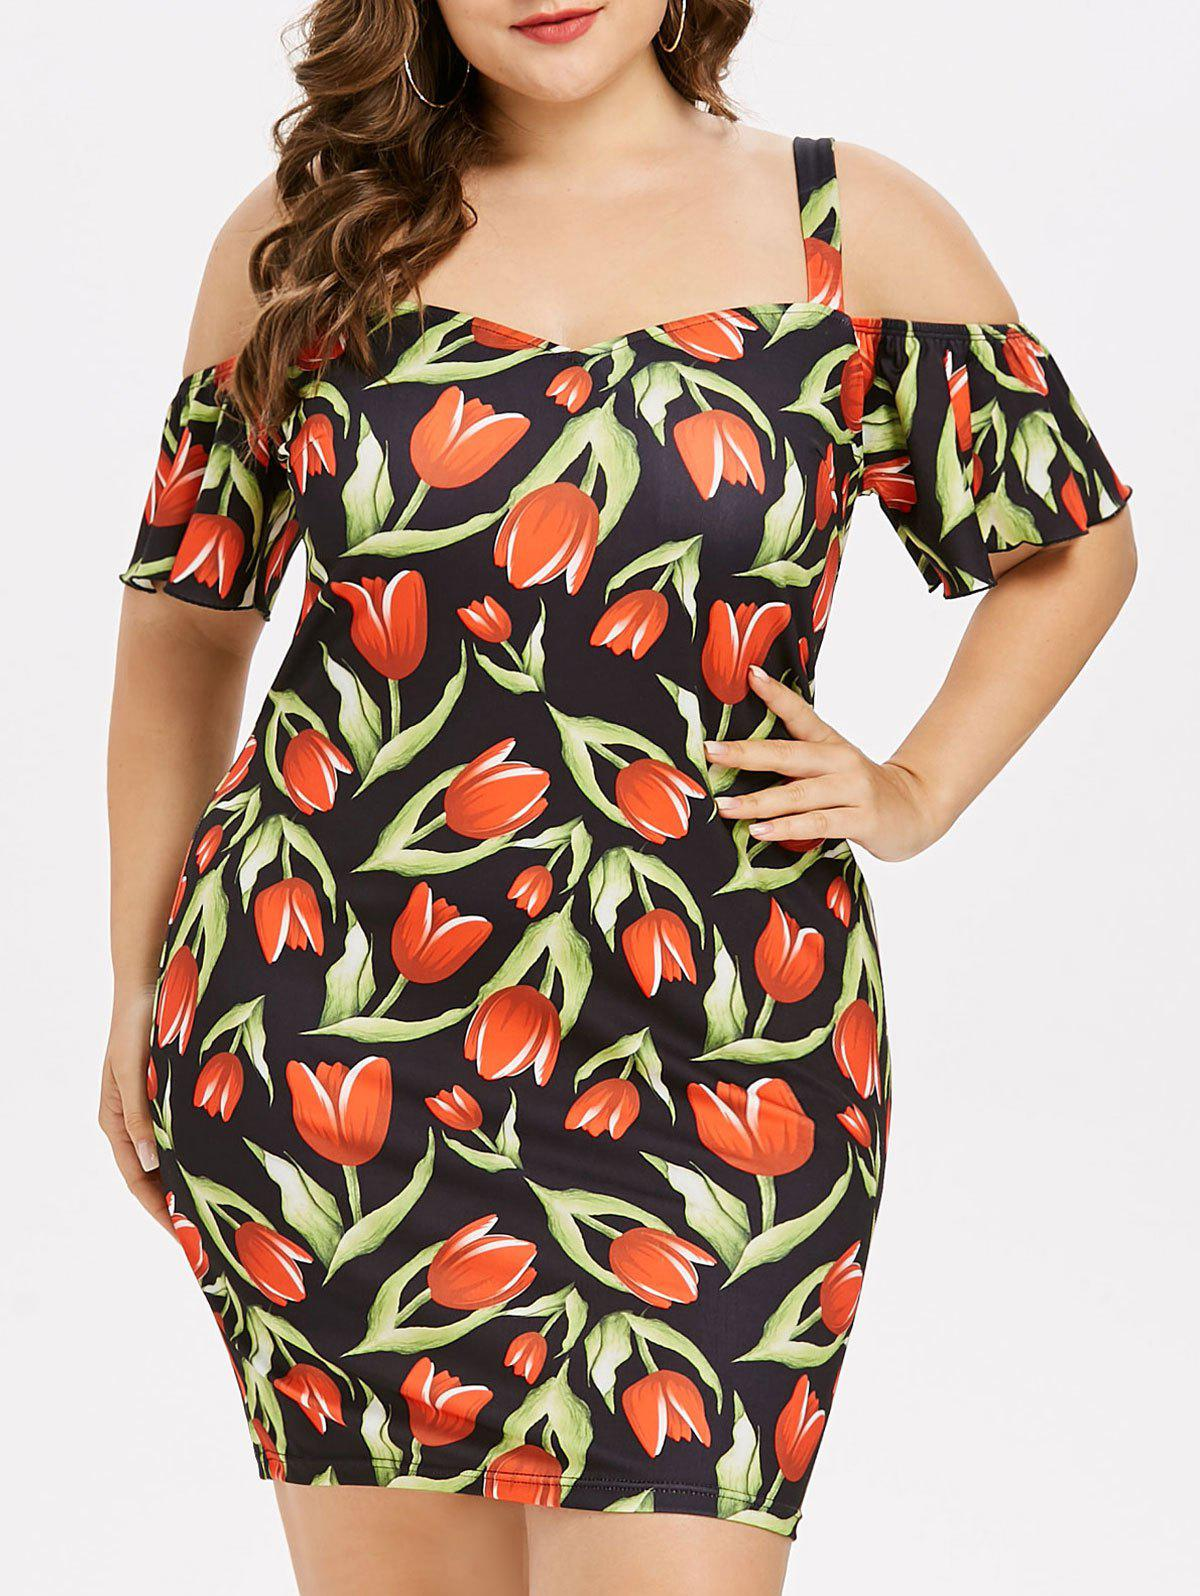 Plus Size Tulip Print Bodycon Dress - multicolor 5X